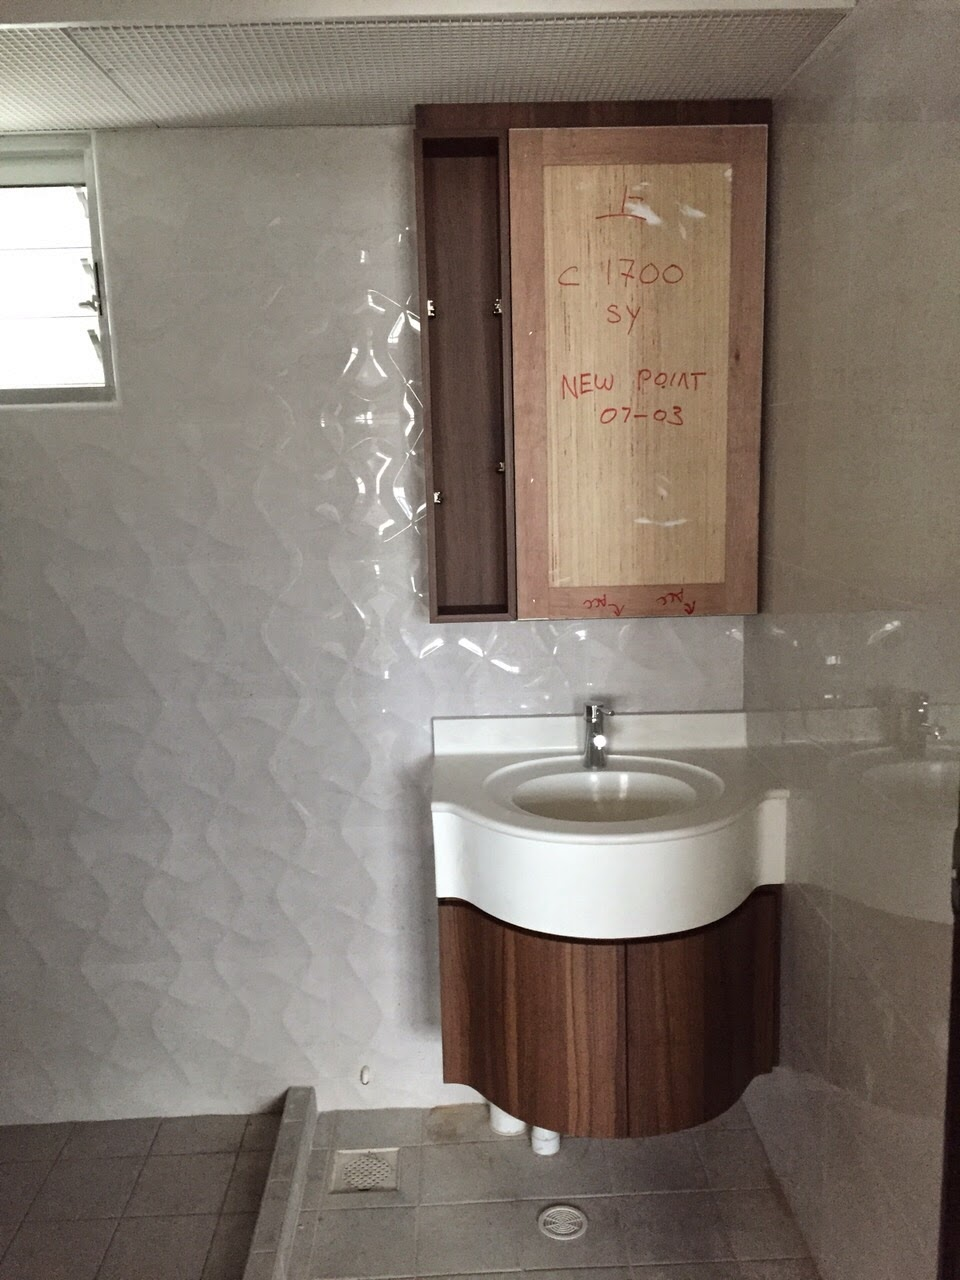 The all you need to know home renovation guide for singaporeans toilet construction in progress dailygadgetfo Images